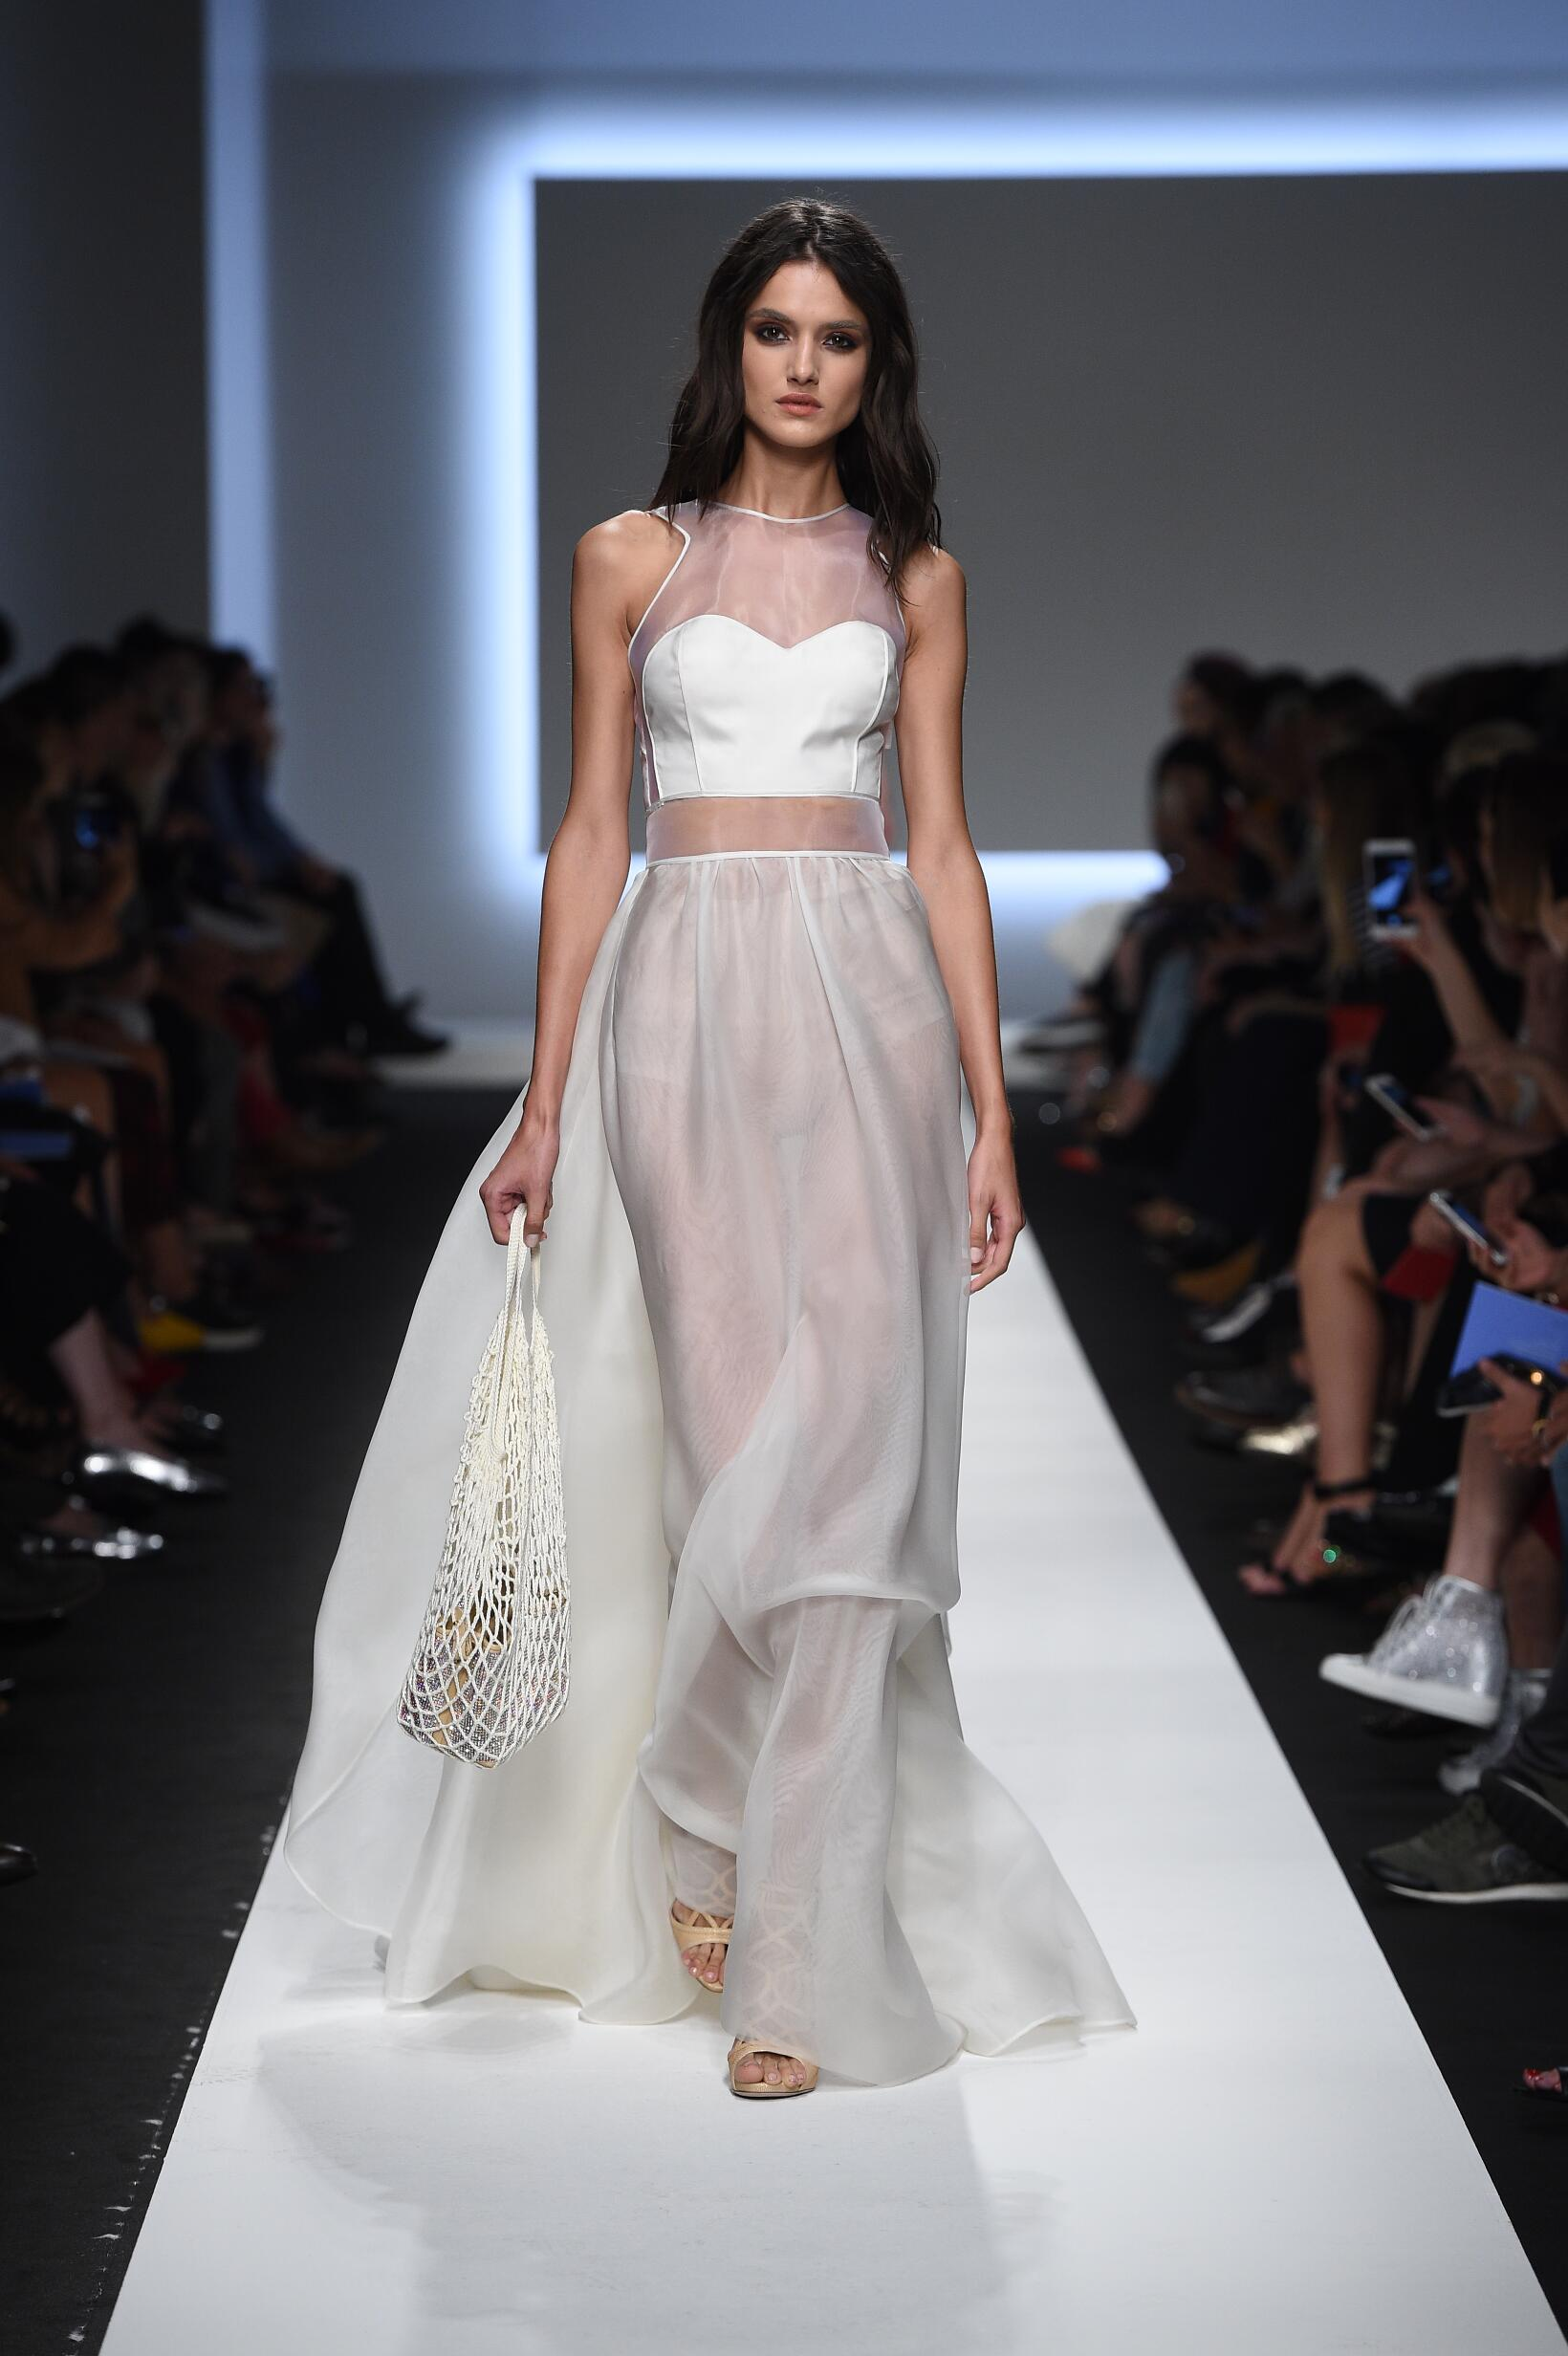 ERMANNO SCERVINO SPRING SUMMER 2016 WOMEN'S COLLECTION